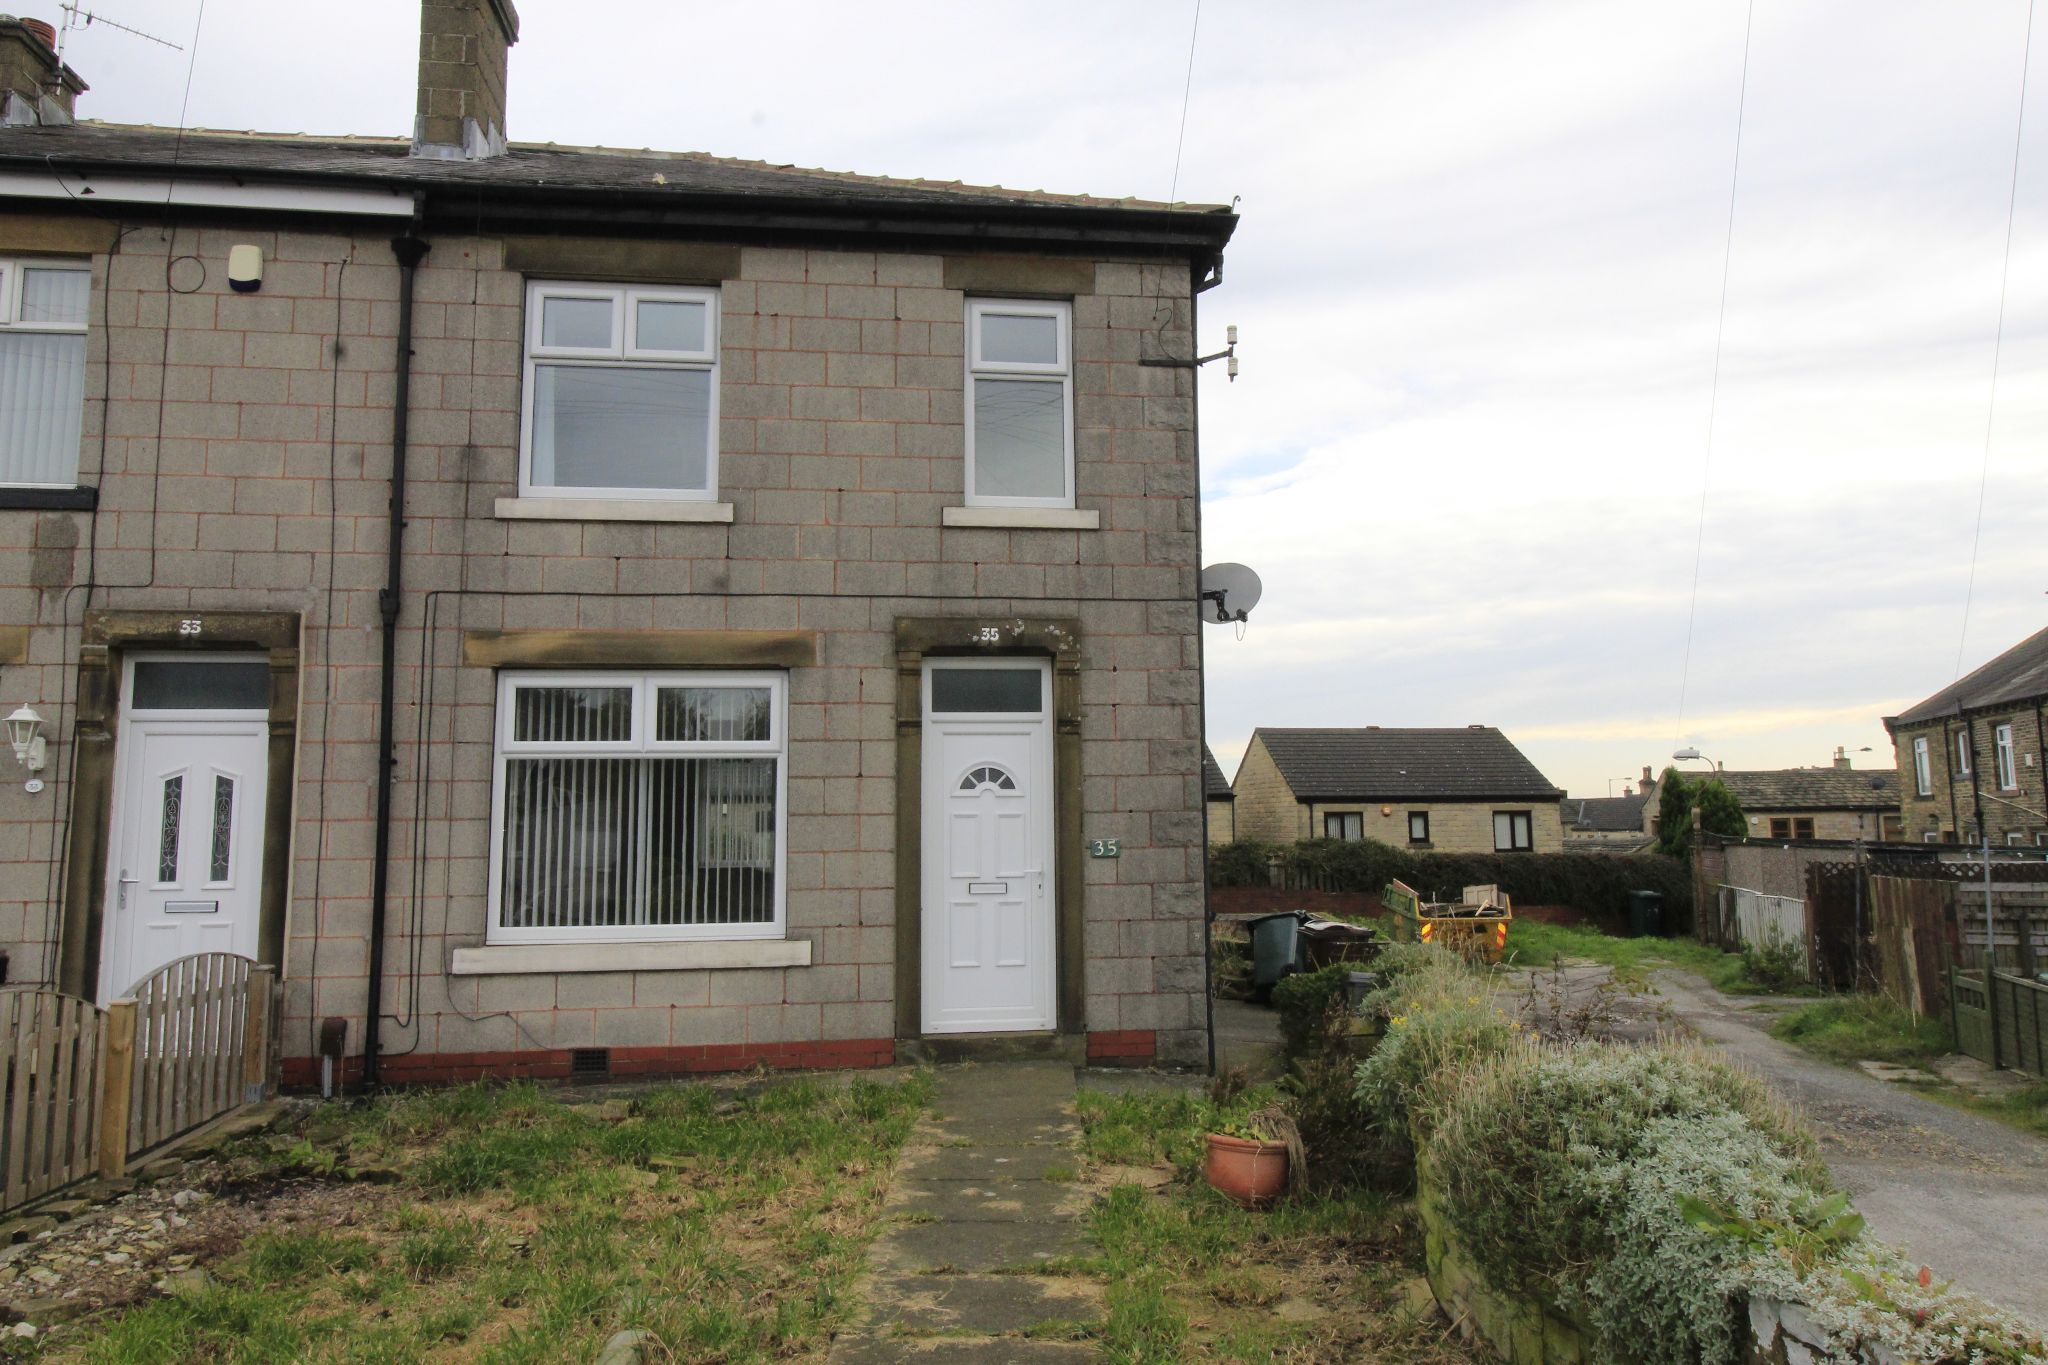 3 bedroom end terraced house Let in Bradford - Front aspect